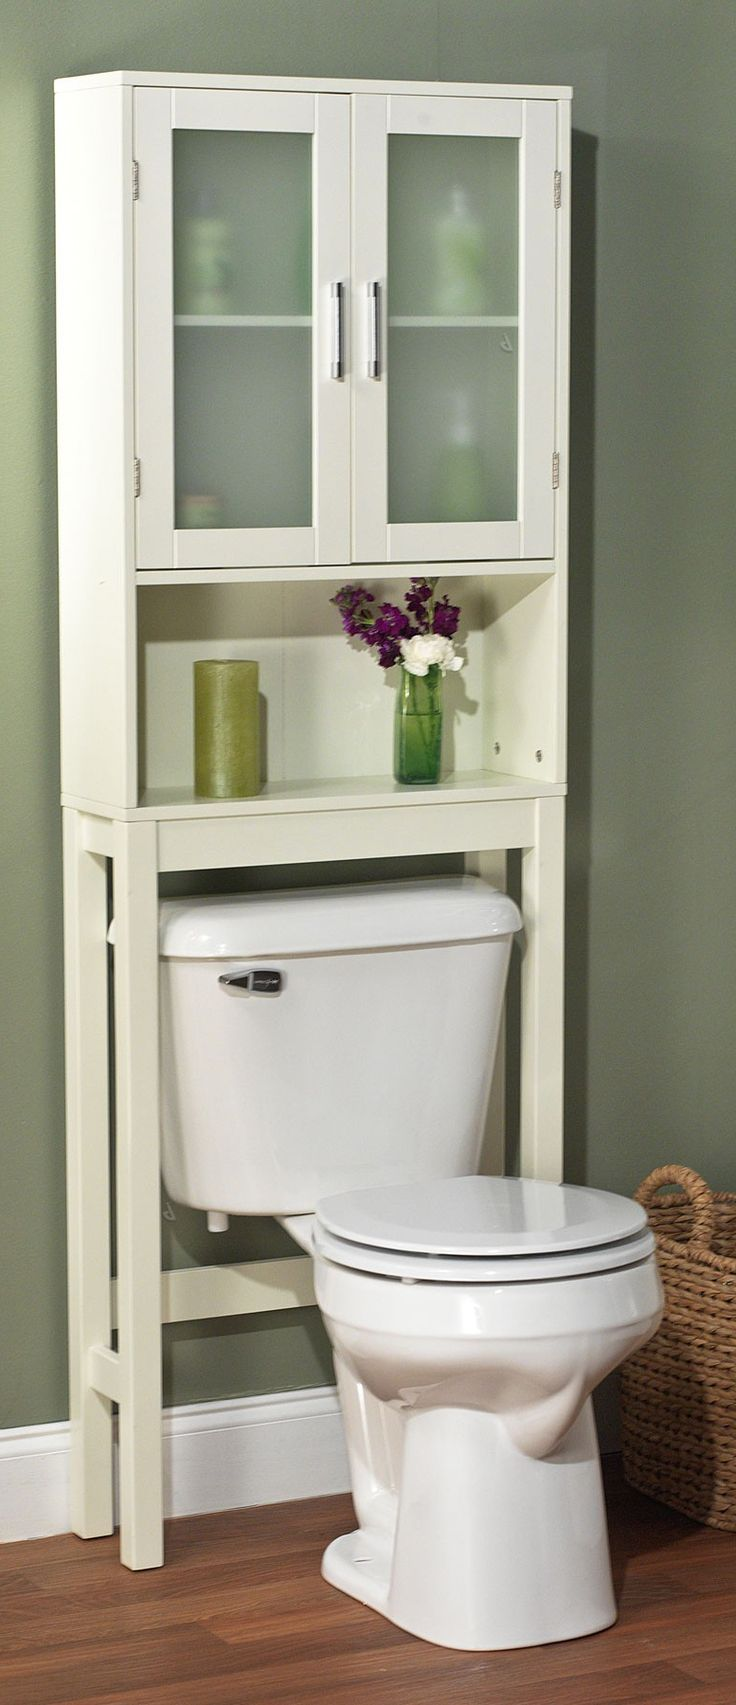 25 best ideas about bathroom space savers on pinterest for Bathroom space ideas